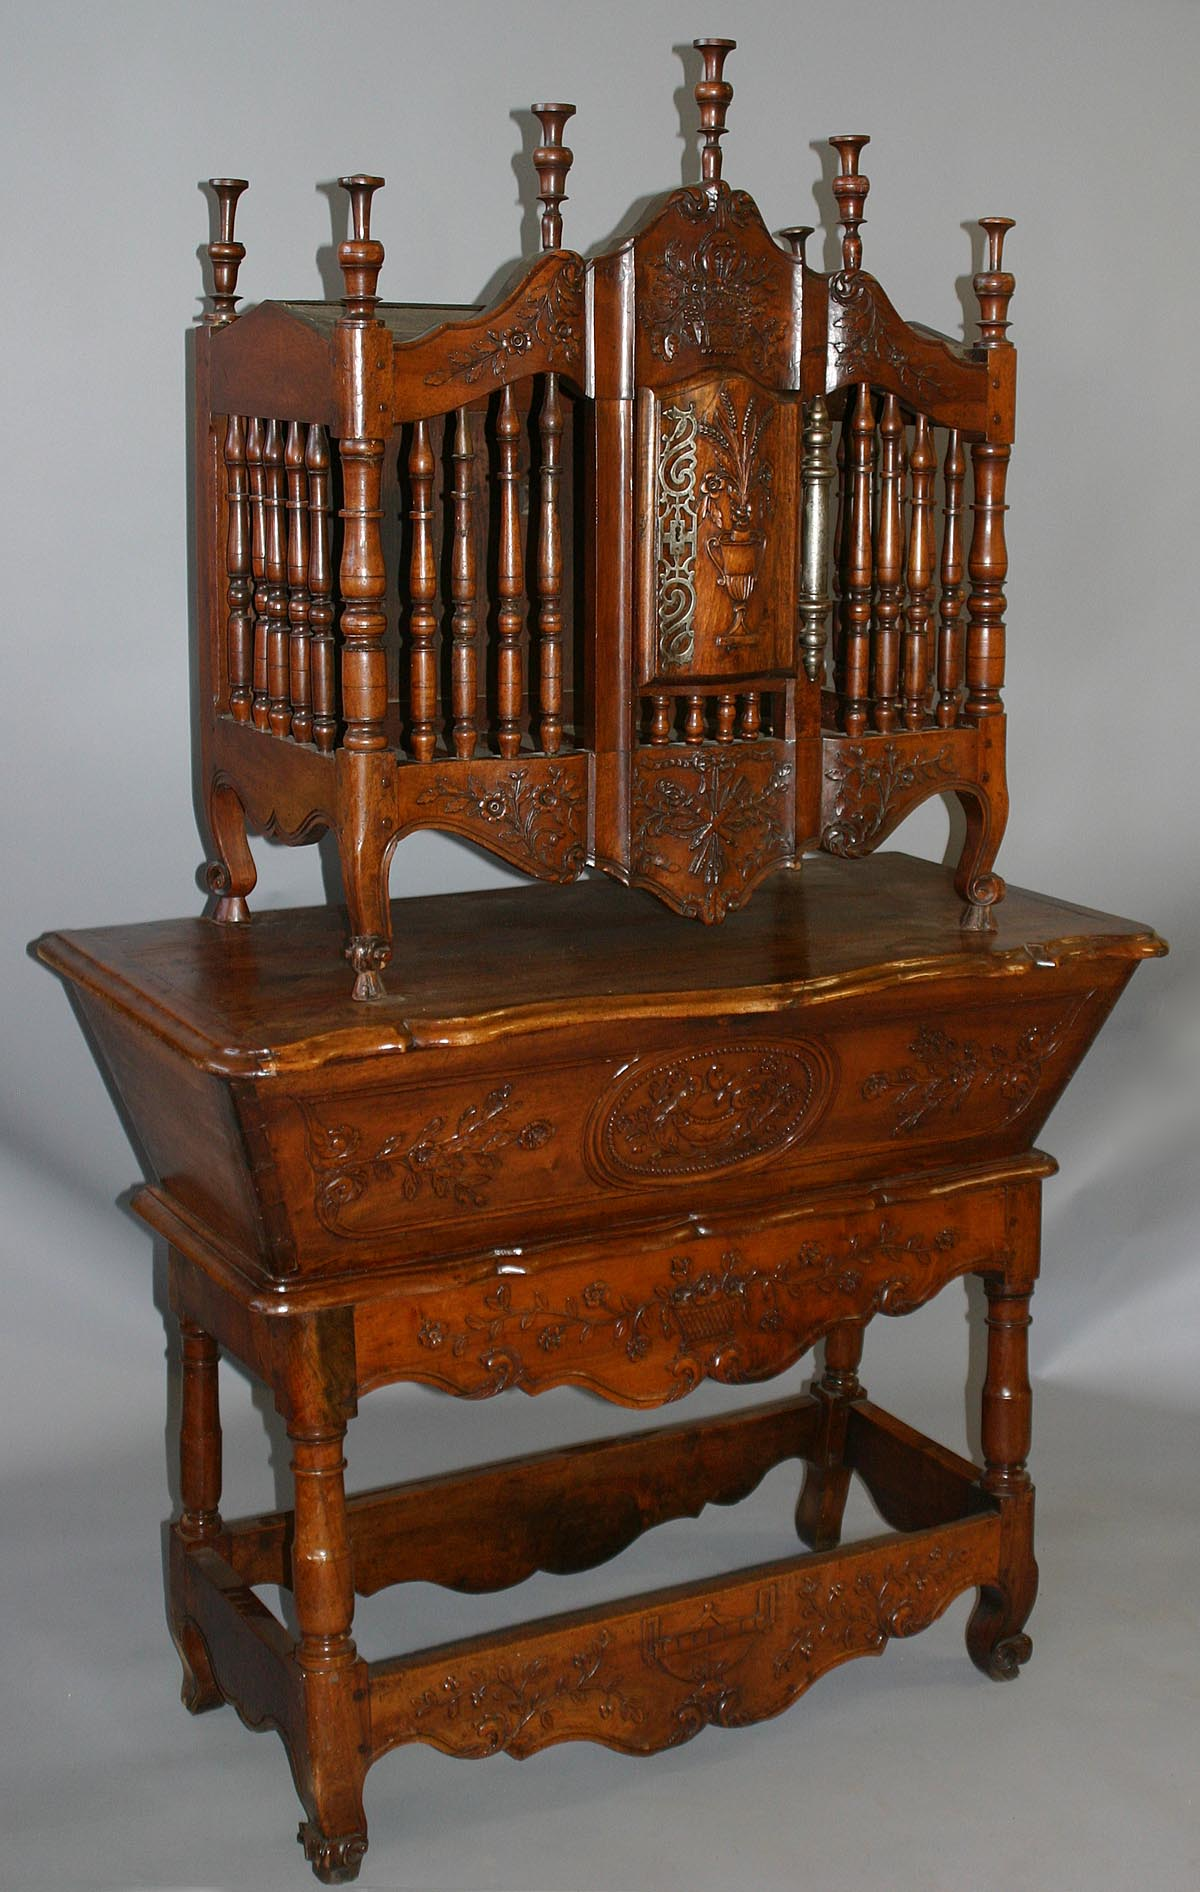 Very fine, French, Louis XV period panetiere and petrin ensemble